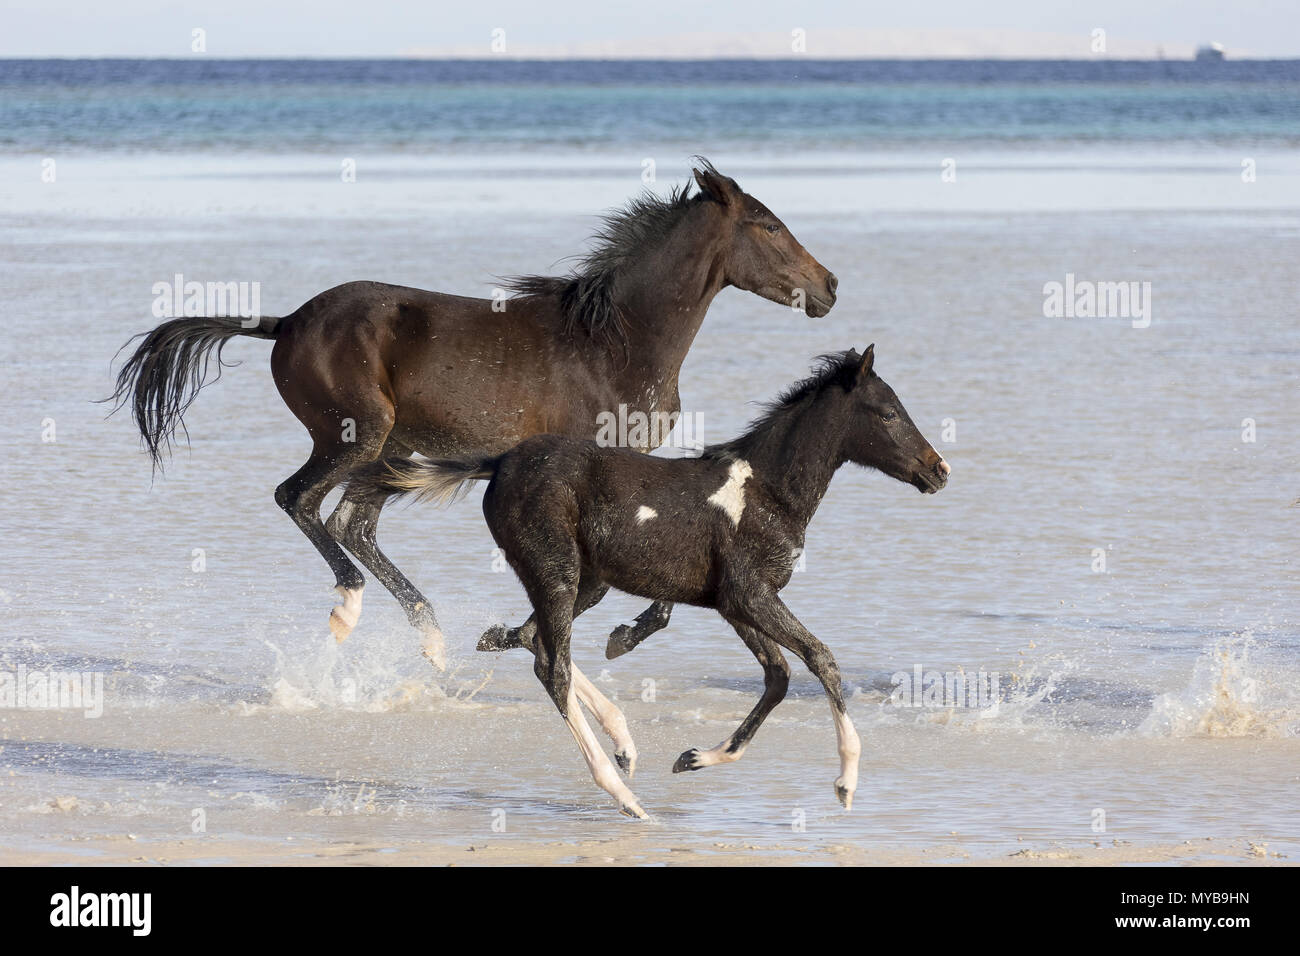 Barb horse. Bay horse and Pinto foal galloping in shallow water. Egypt. - Stock Image